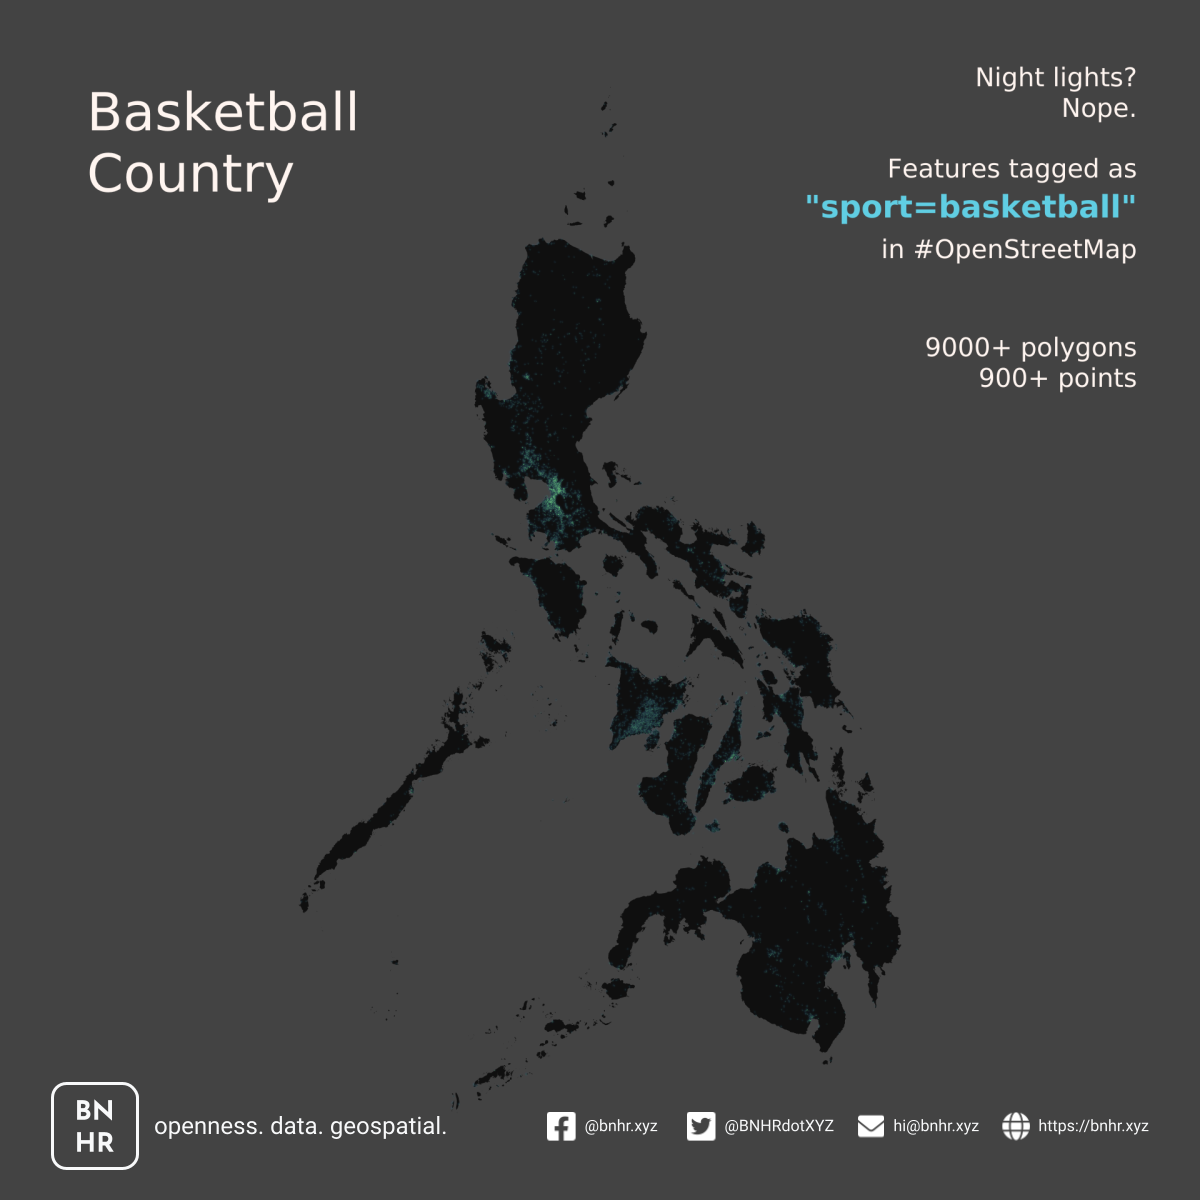 features tagged as sport=basketball in OSM